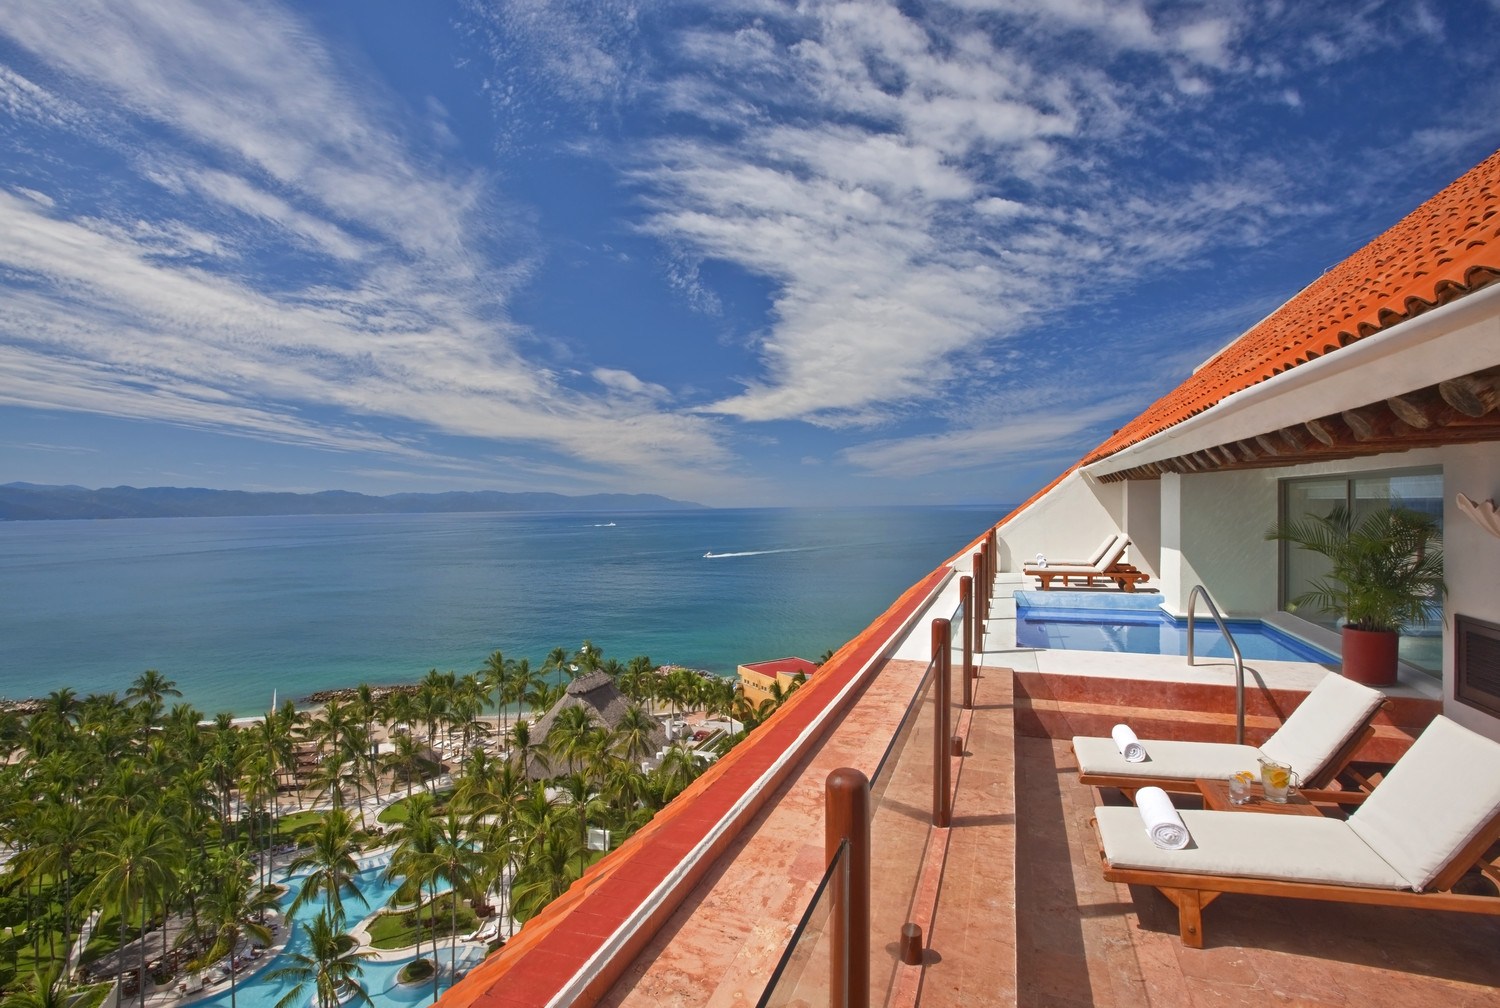 Westin Resort Puerto Vallarta balcony ocean view